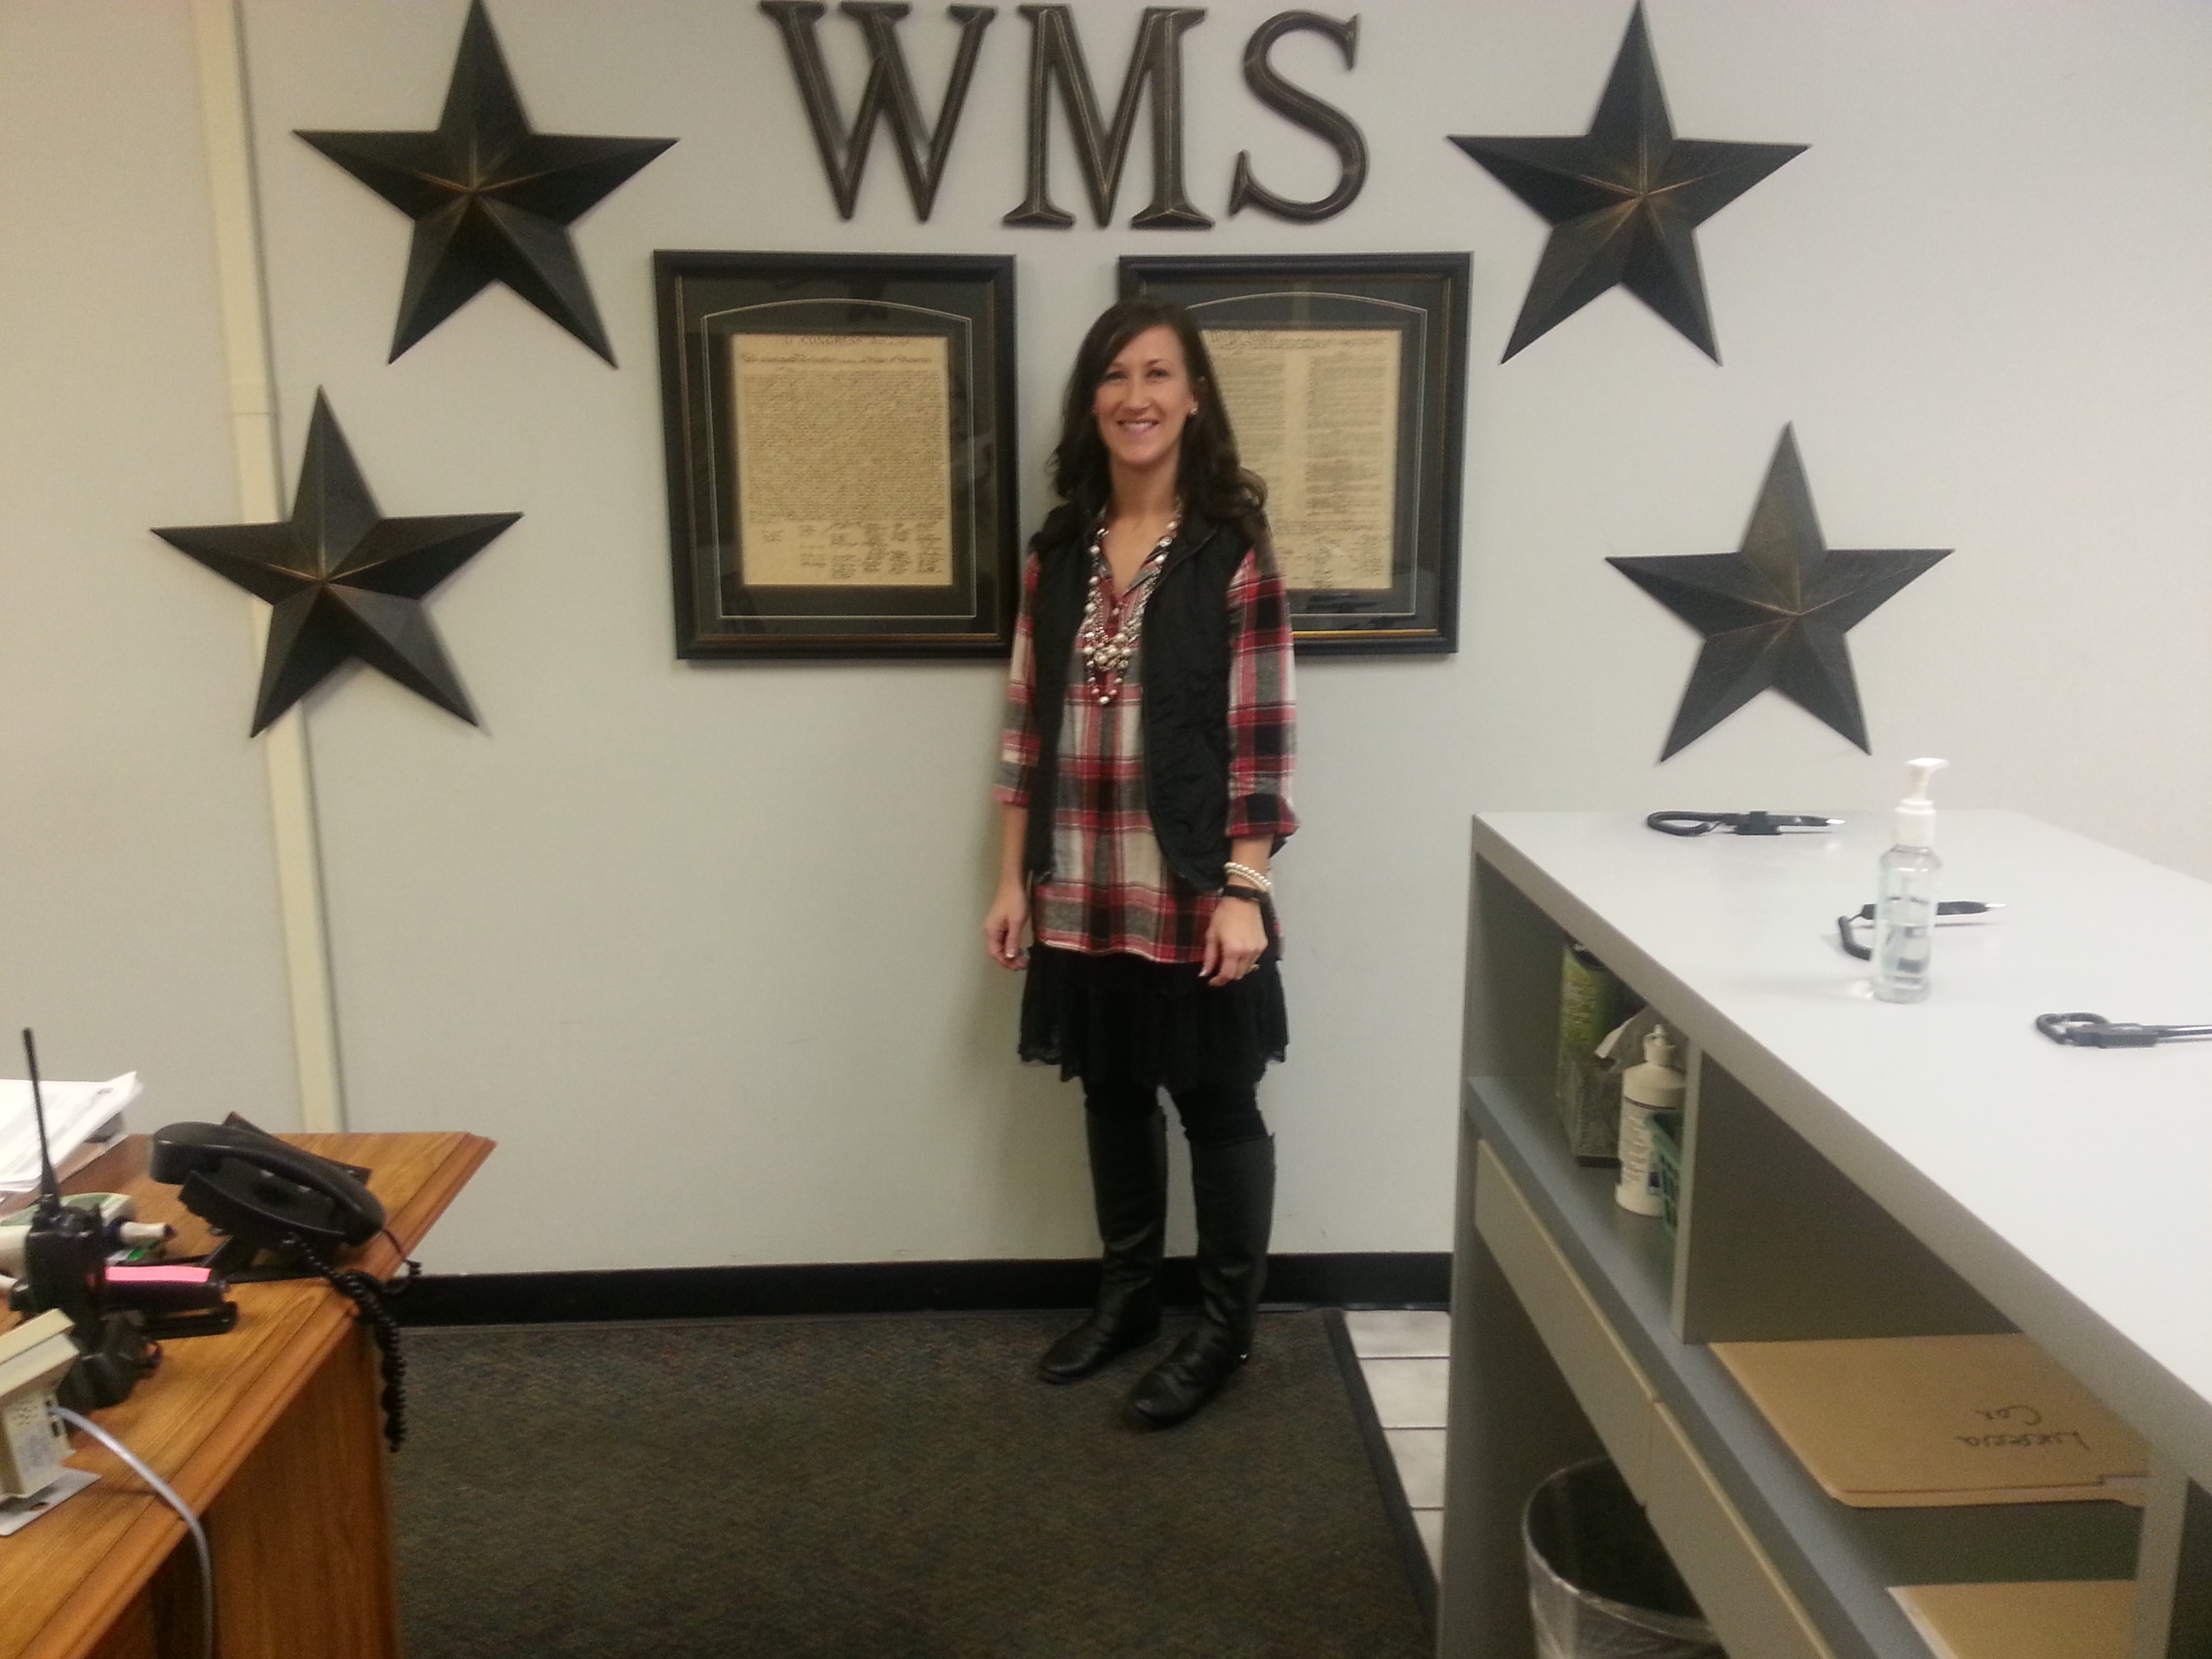 The WMS Teacher of the Year ... s Mrs. Donielle Walker.  Mrs. Walker is an 8th grade science teacher at WMS.  CONGRATULATIONS Mrs. Walker!!!  (01/09)